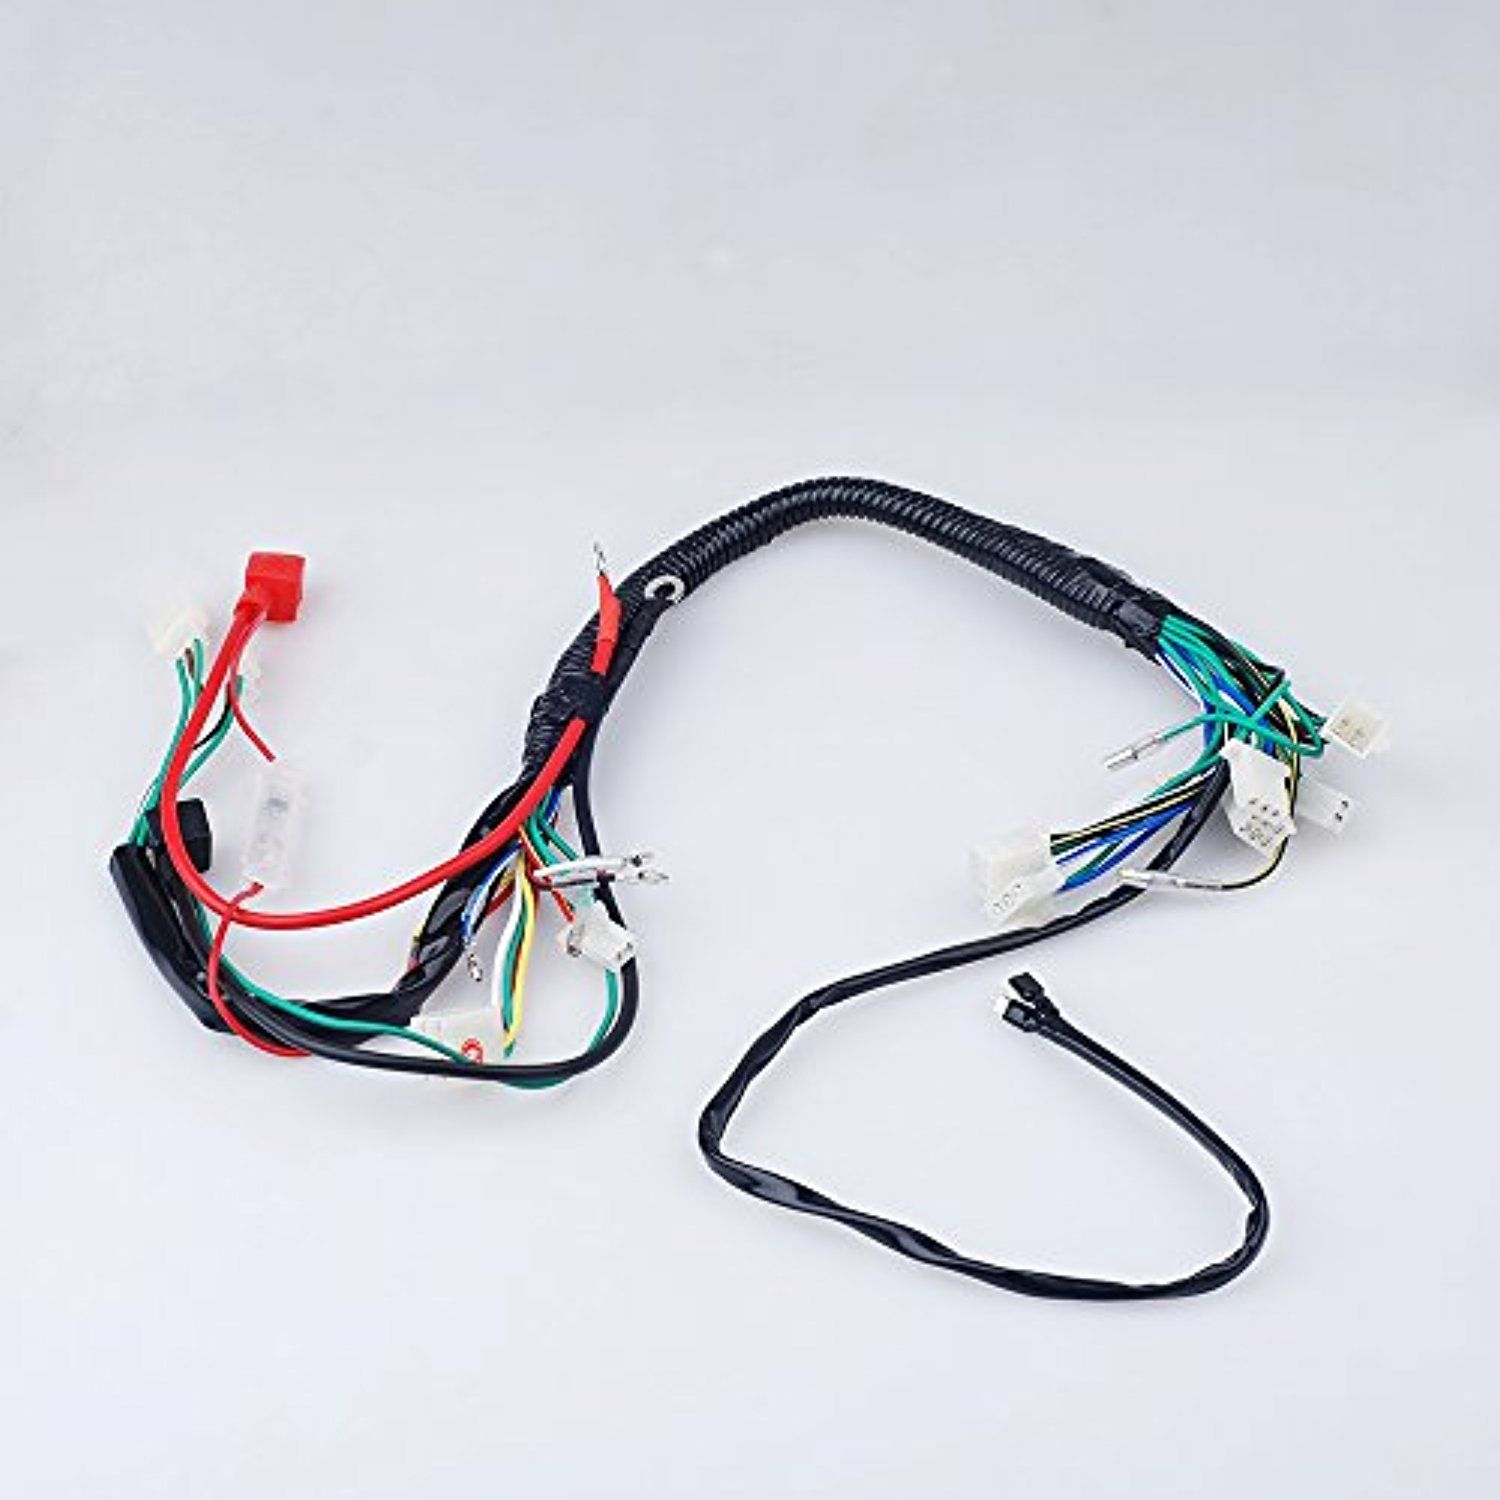 Electric Start Wiring Harness Wire Loom Pit Bike Atv Quads 50 110 Pin Board 125cc Go Kart Awesome Products Selected By Anna Churchill